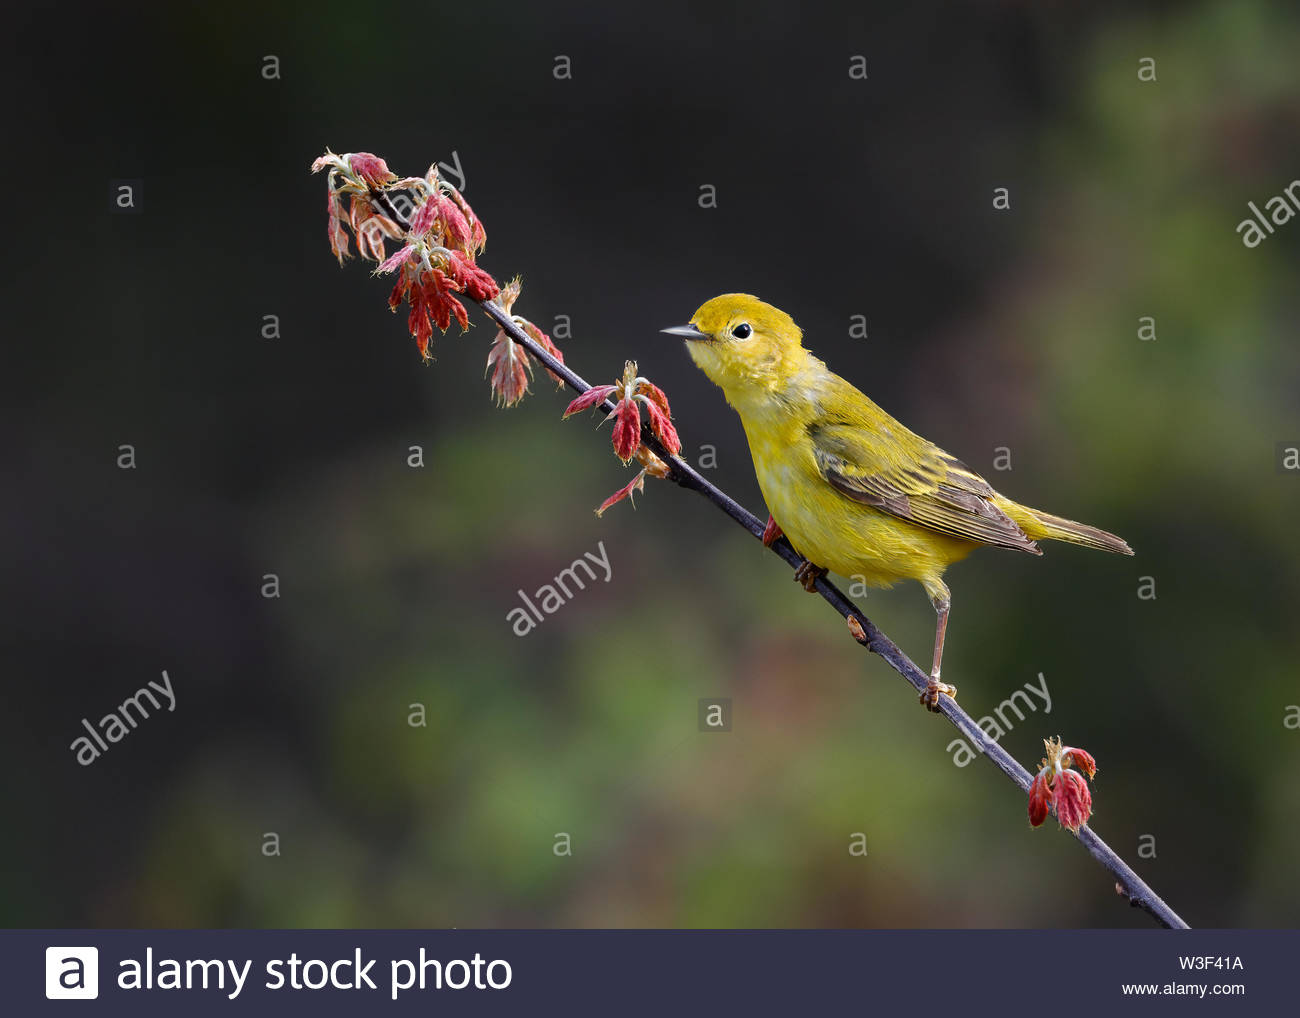 Yellow Warbler in sunlight perched and leaning forward on budding oak tree with new red leaves against shaded forest background. - Stock Image